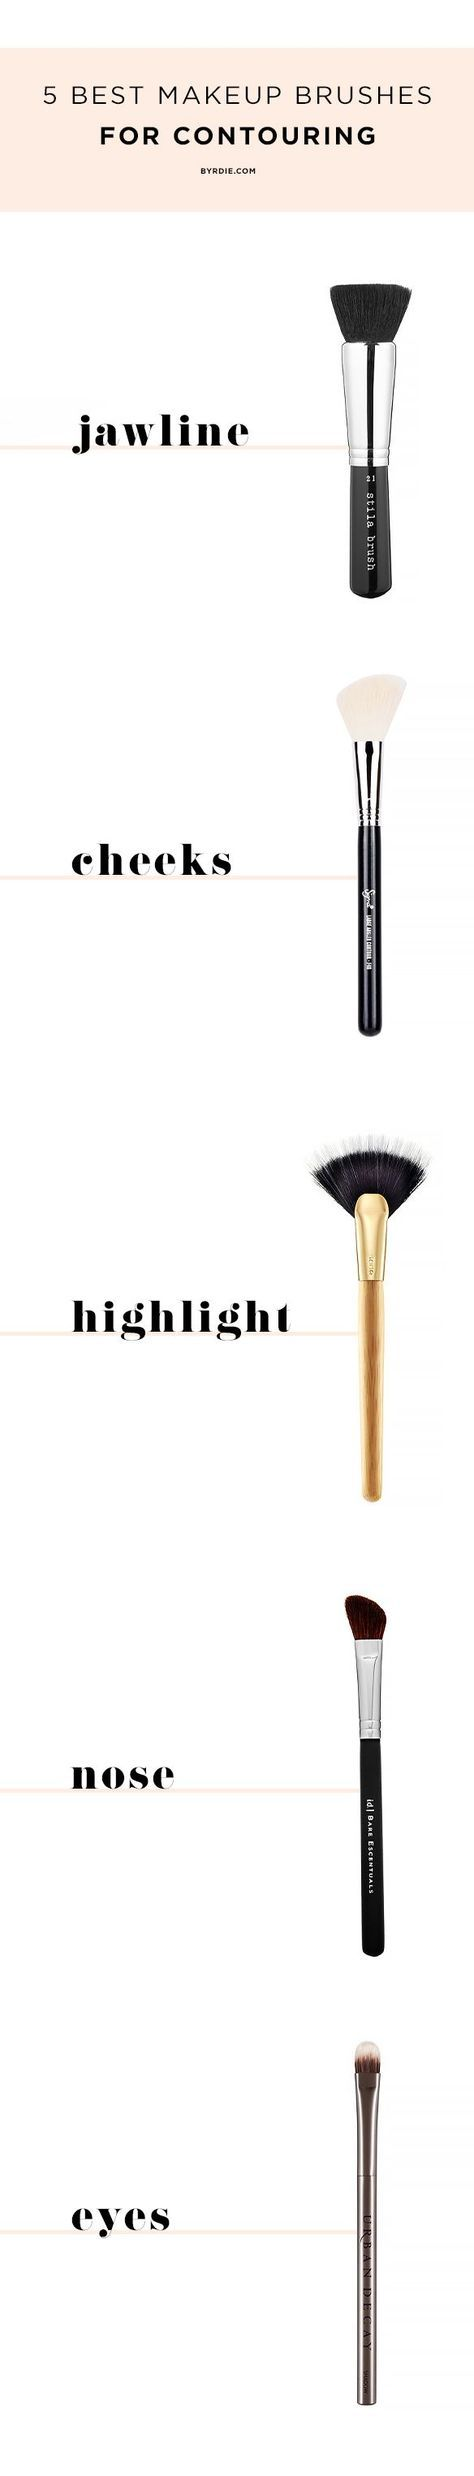 The essential makeup brushes you need for the perfect contour: